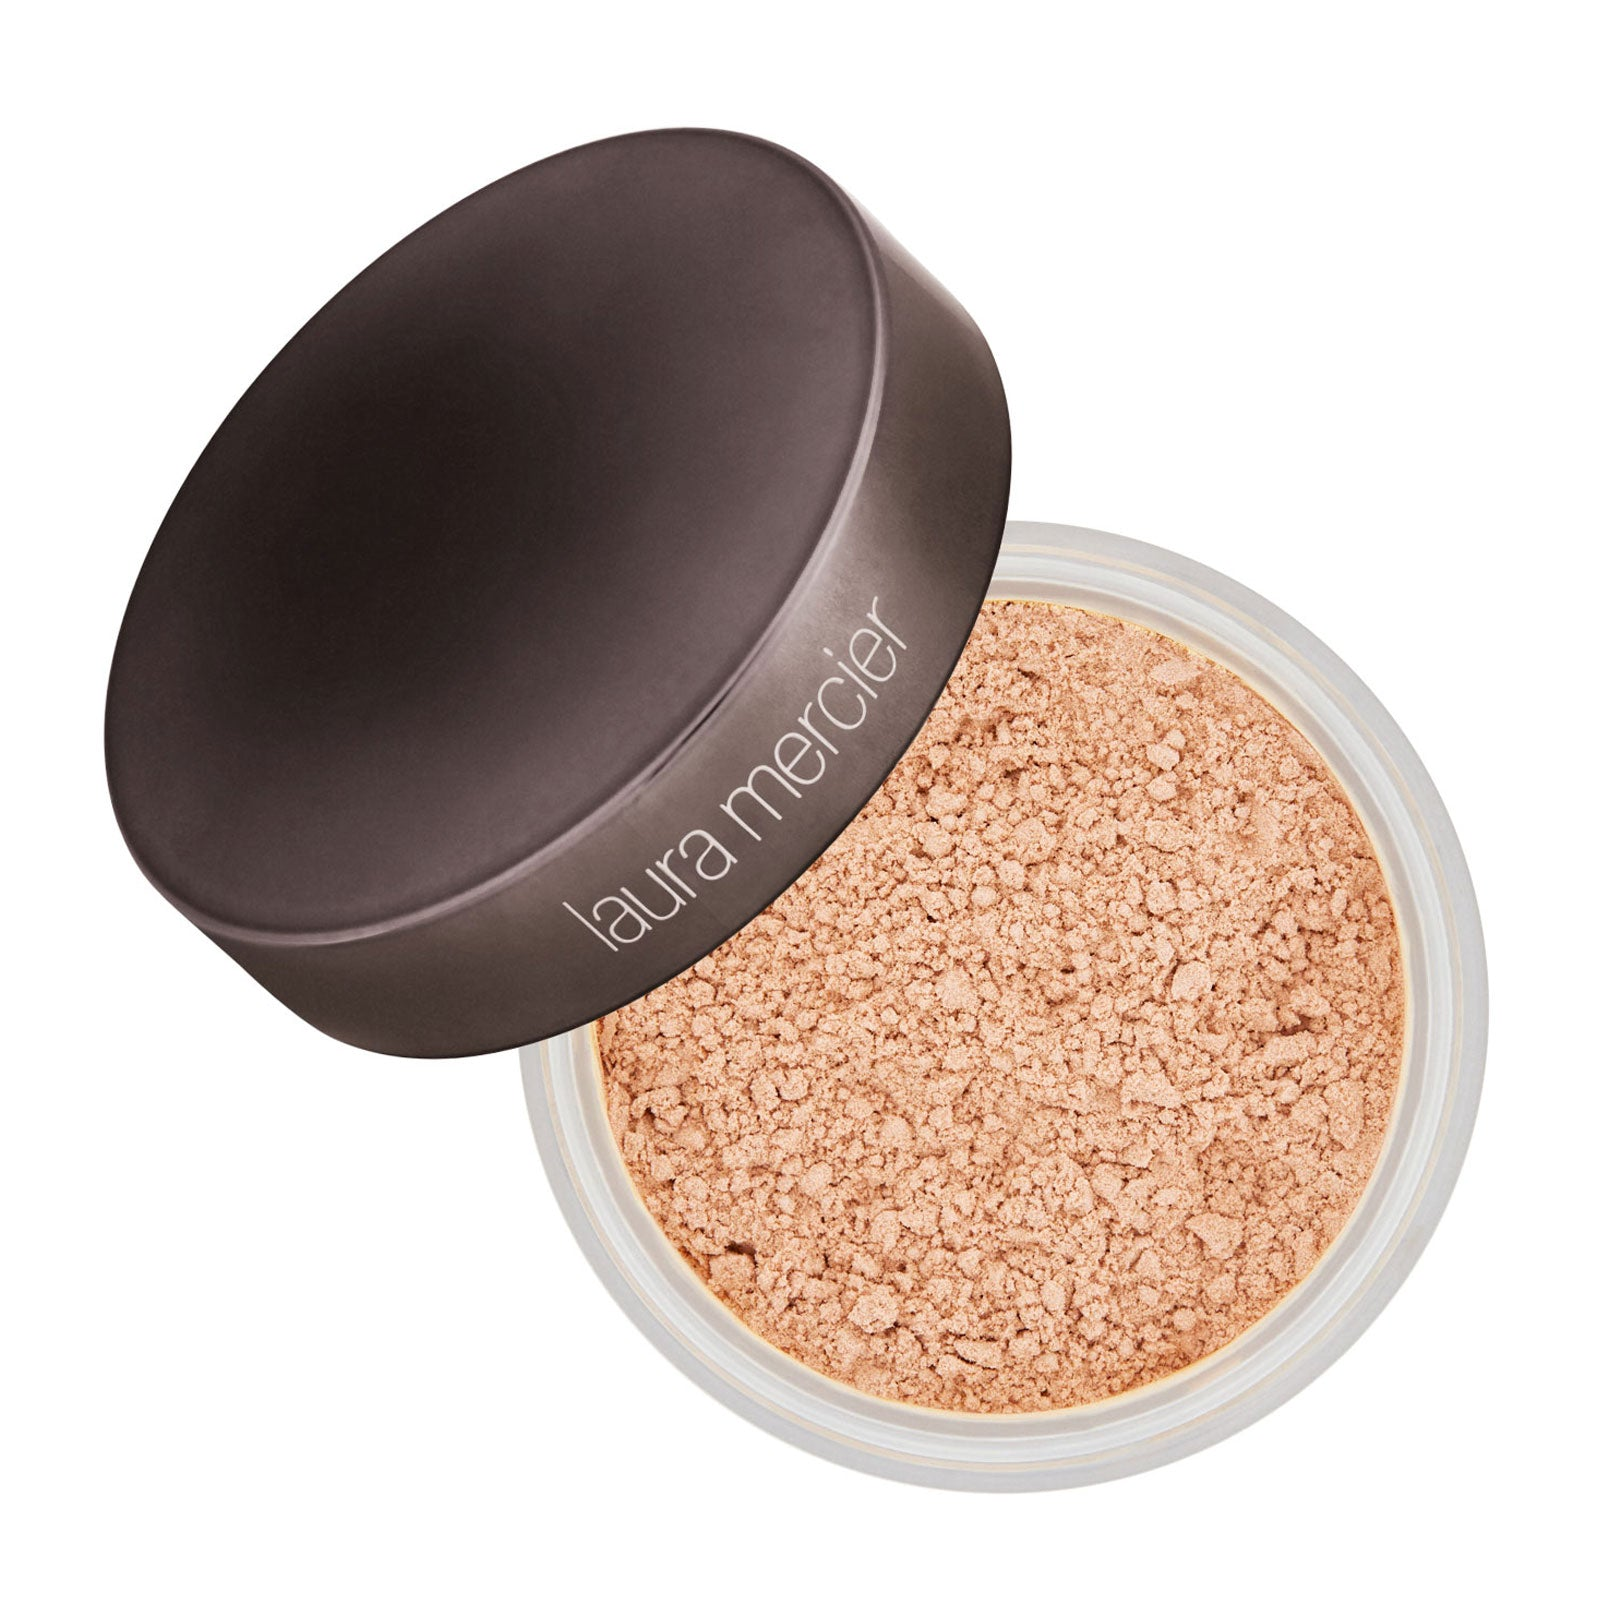 Laura Mercier Translucent Setting Powder - Glow 29g